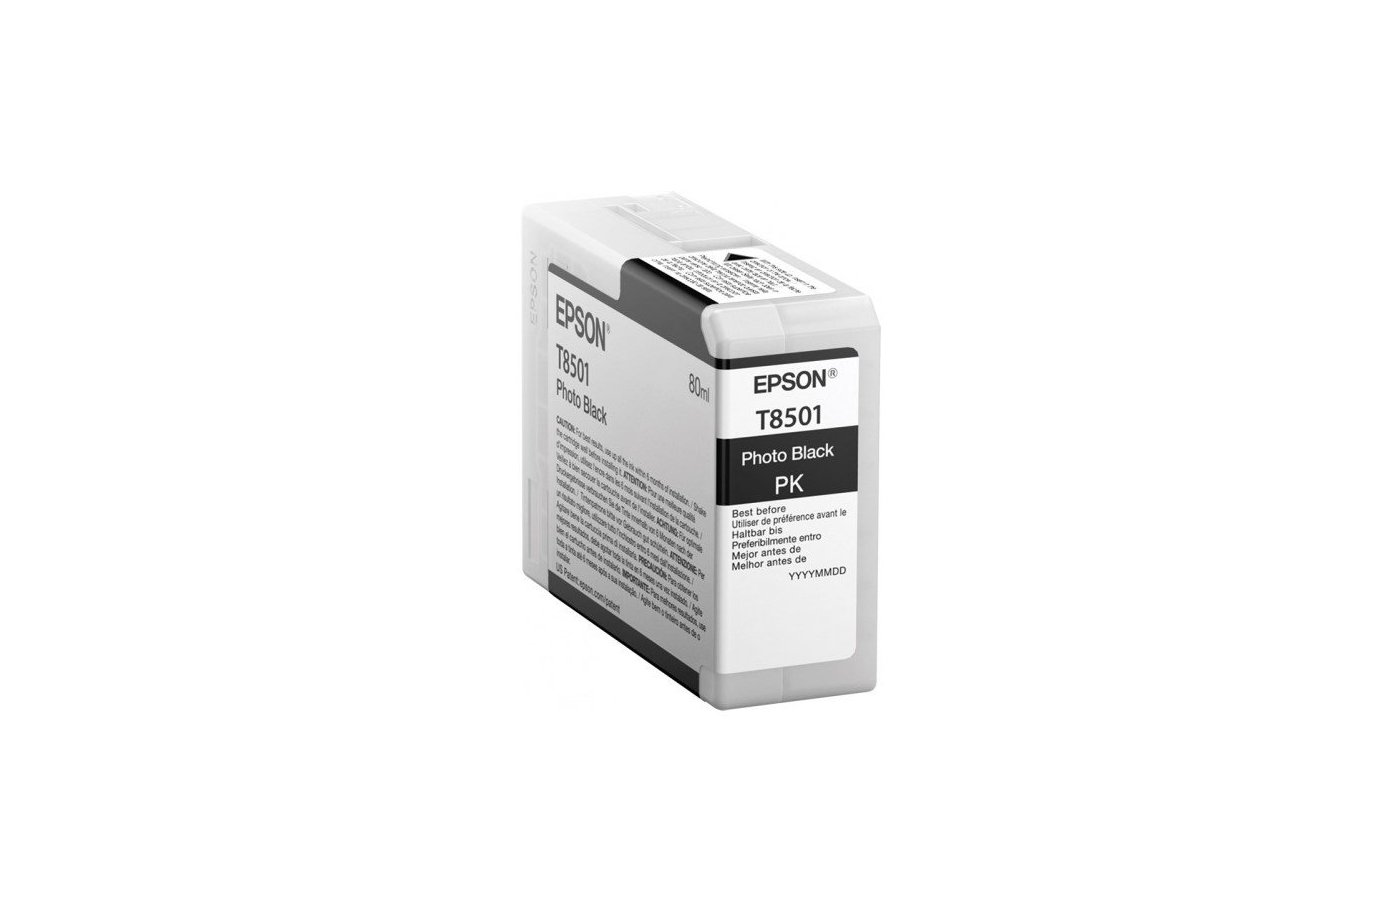 Картридж струйный Epson C13T850100 картридж Black UltraChrome HD для SC-P800 черный